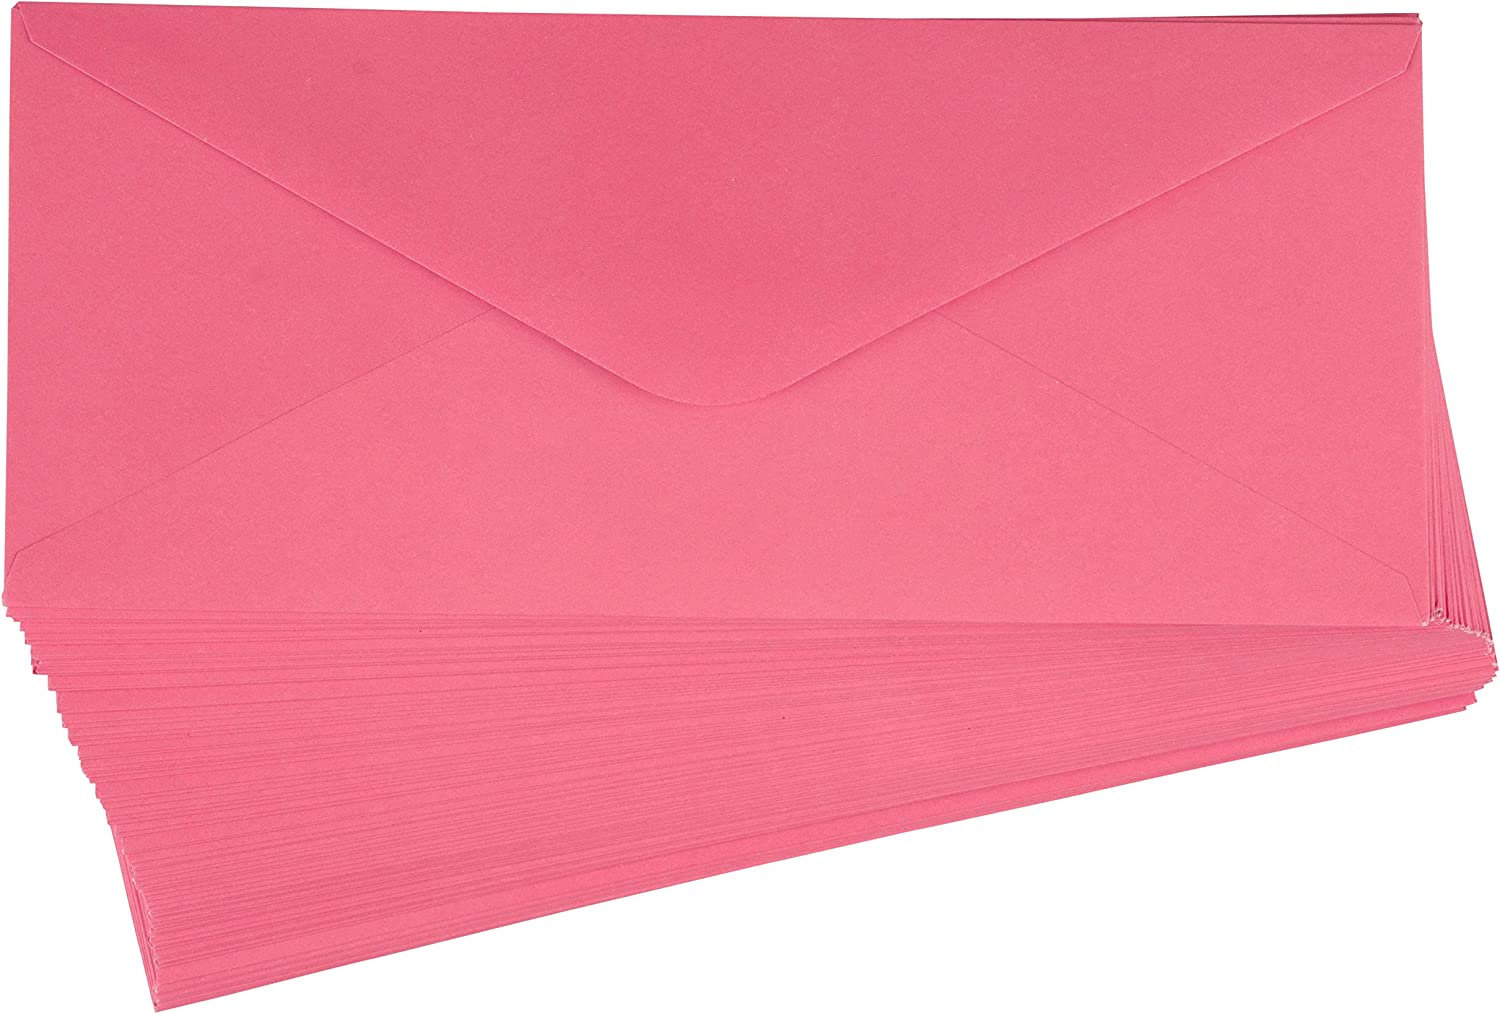 Business Envelopes - 96-Pack #10 Envelopes, V-Flap Envelopes for Holiday, Office, Checks, Invoices, Letters, Mailings, Windowless Design, Gummed Seal, Bright Pink, 4-1/8 x 9-1/2 Inches